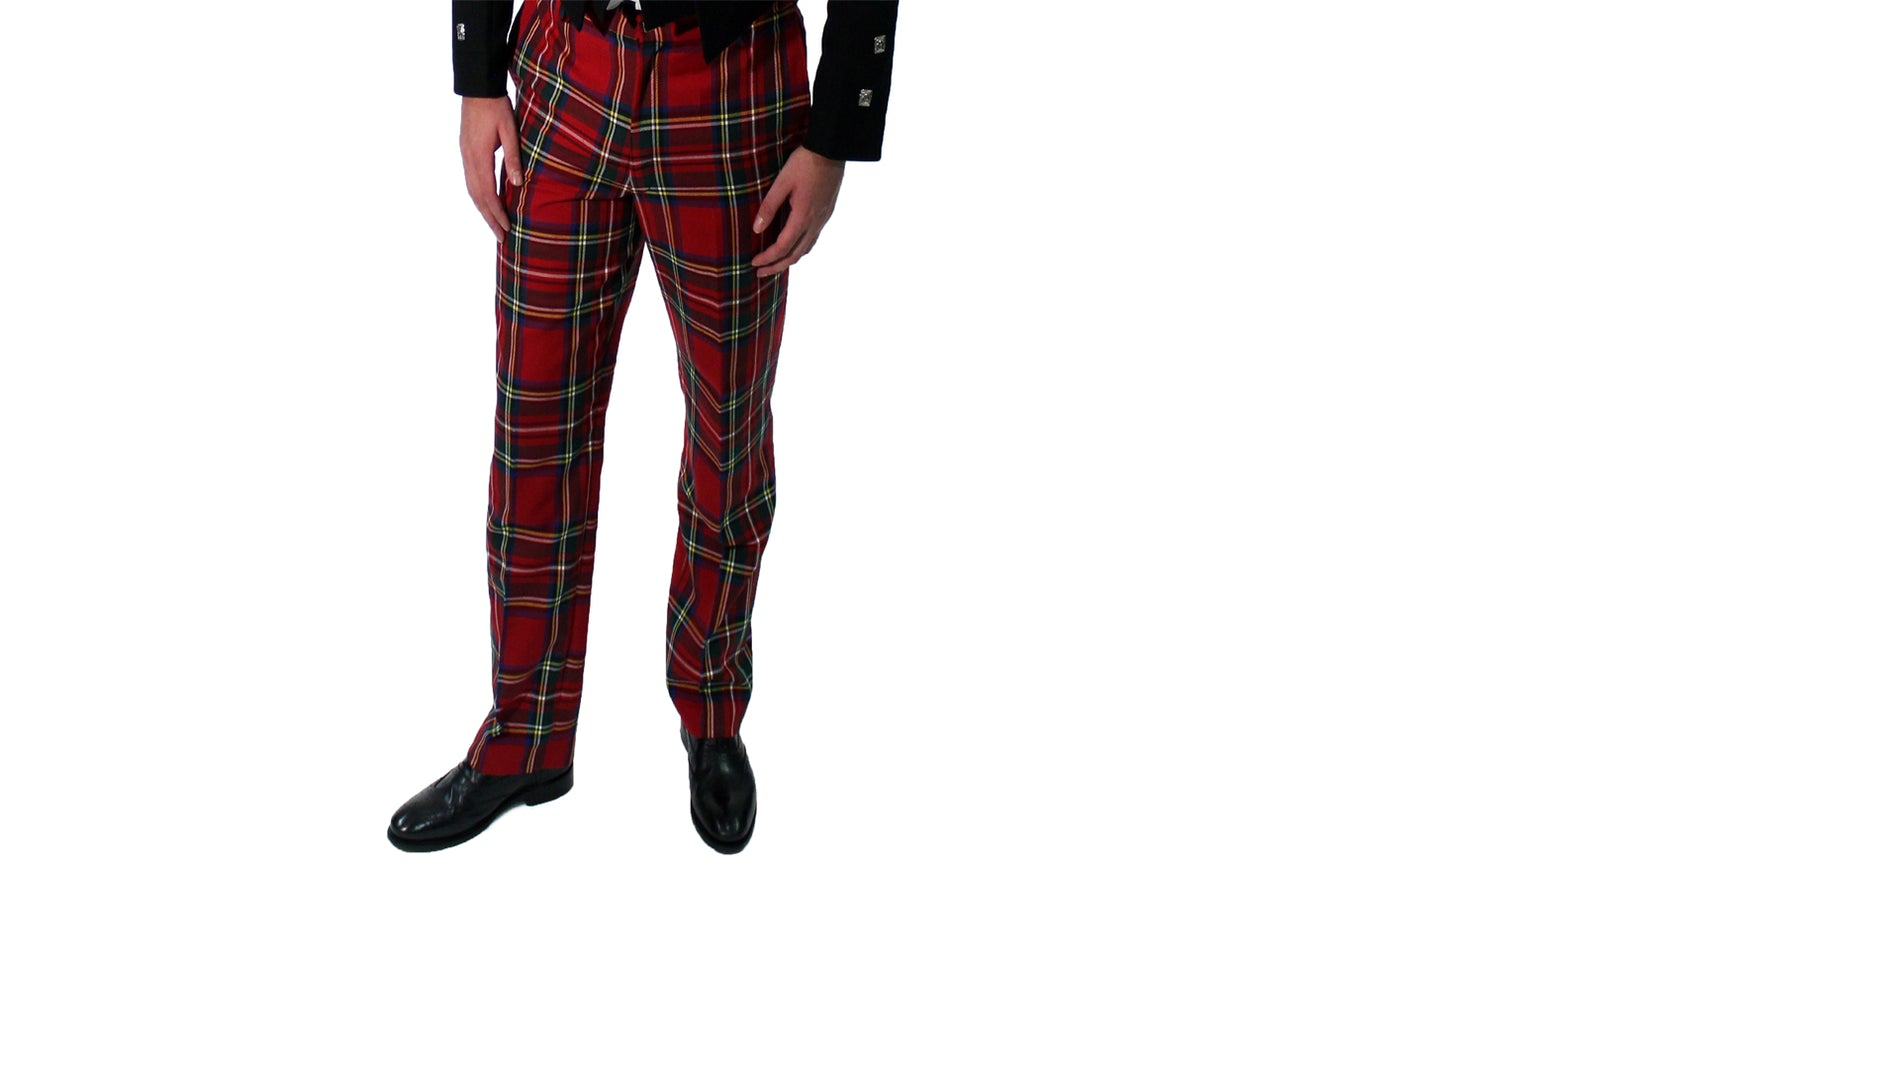 Where did Tartan Trews come from?